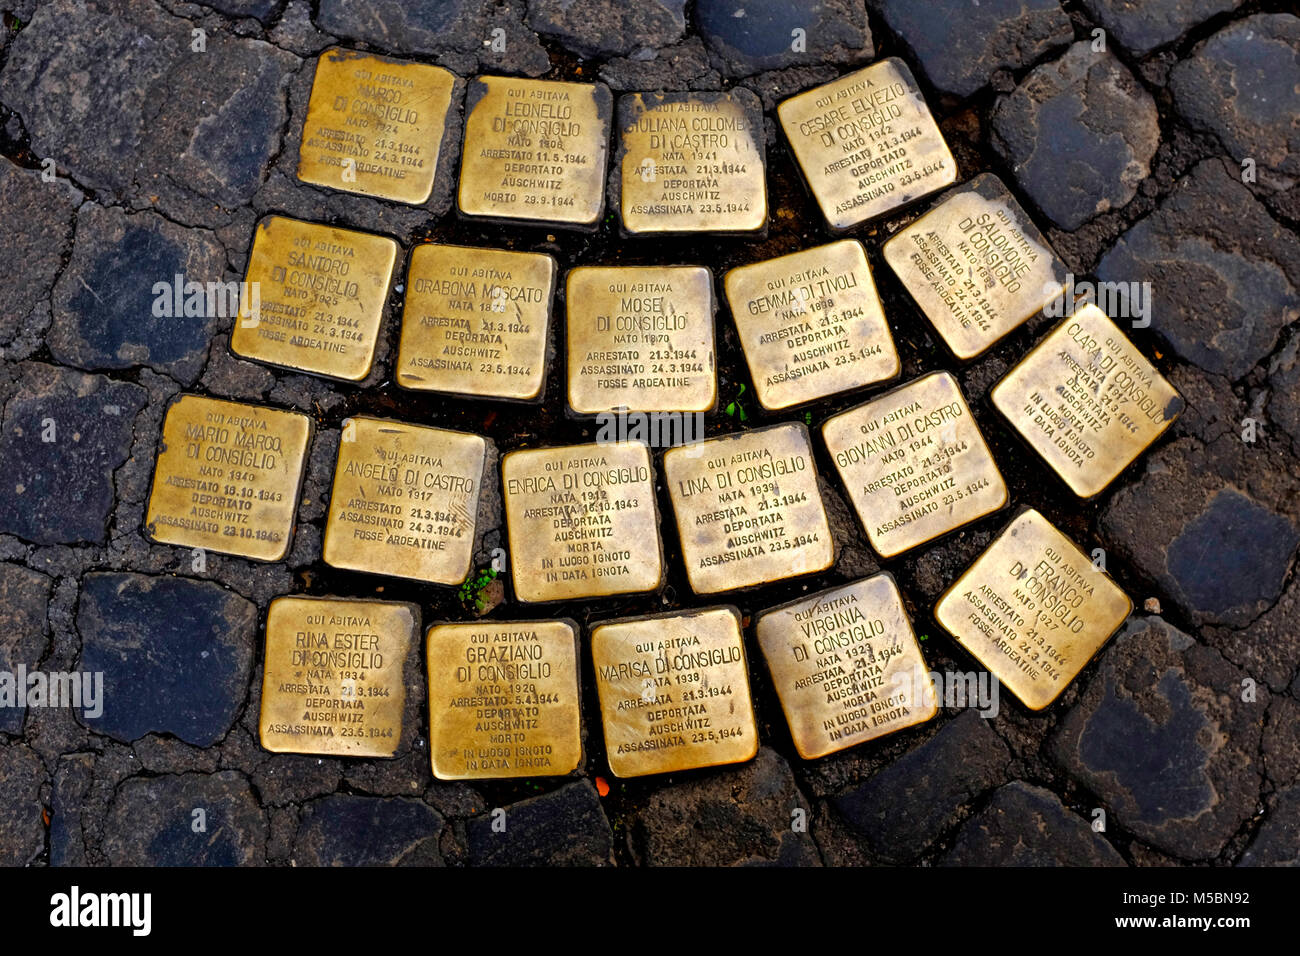 cobblestone-size concrete cube bearing a Stolperstein,a brass plate inscribed with the name and life dates of victims - Stock Image